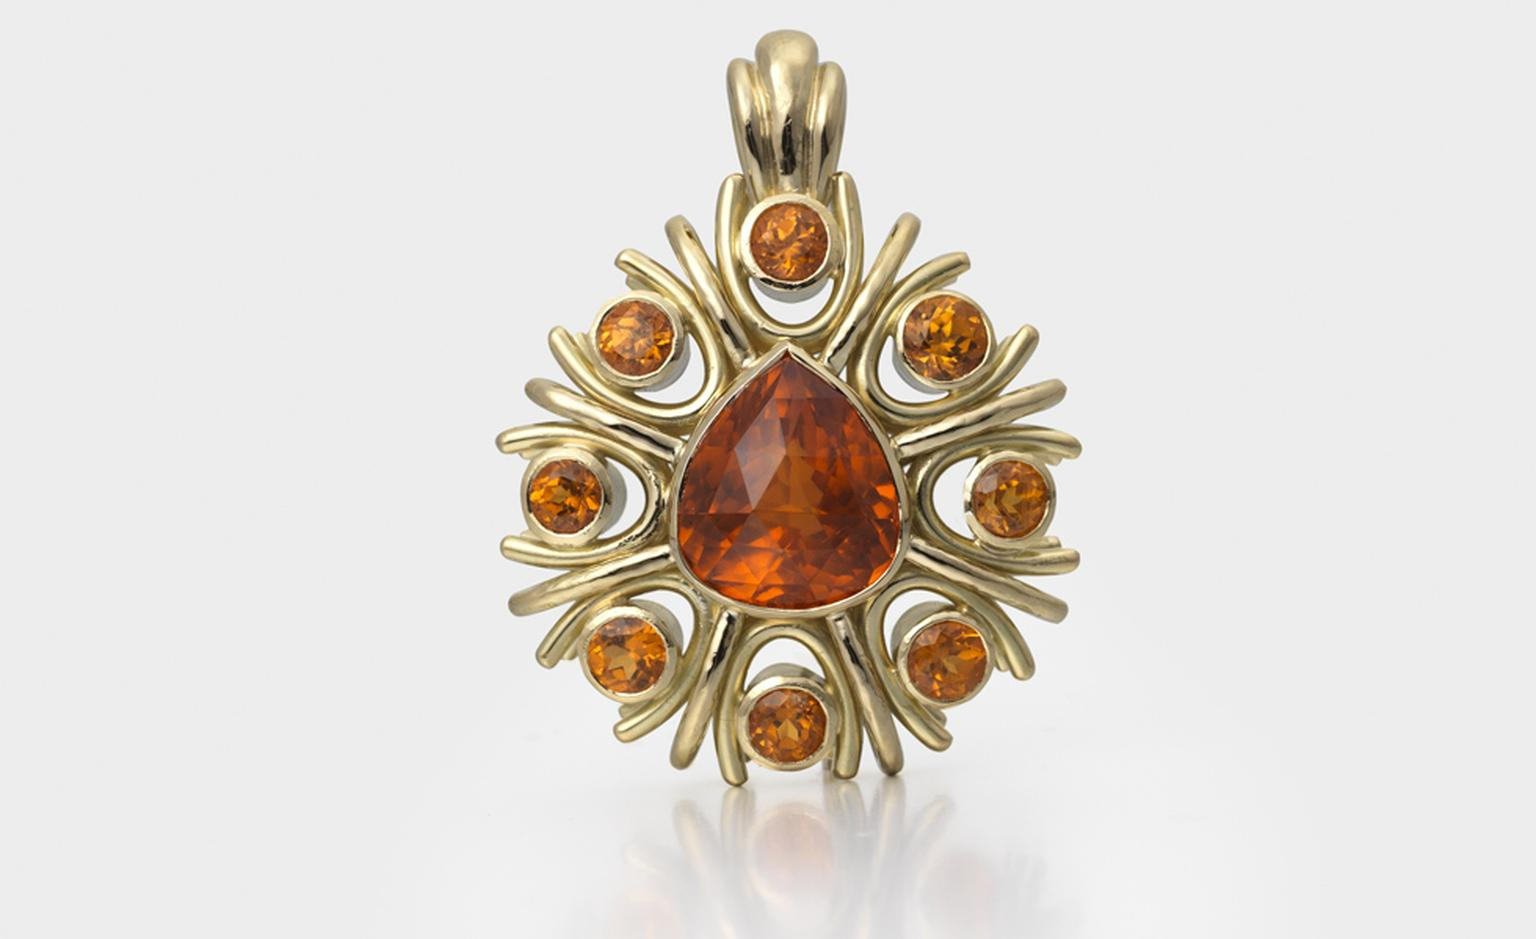 Pendant in 18ct gold set with bright neon mandarin garnets by Jane Sarginson. Price from £17,500